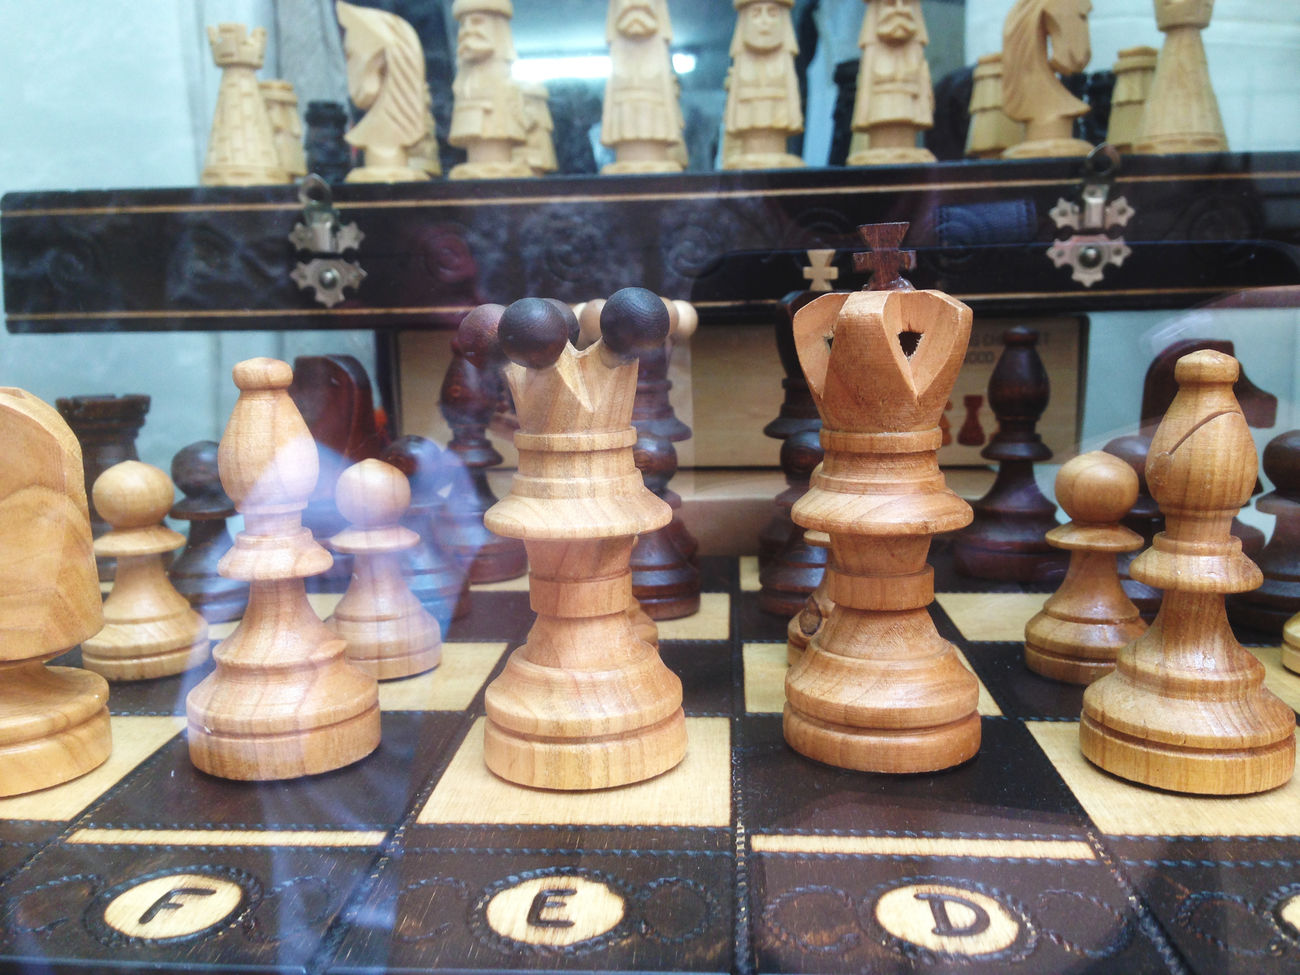 Chess pieces displayed Board Board Game Brain Brain Games Chess Chess Board Chess Piece Choice Collection Decisions Displayed Figurine  Figurines  For Sale Game In A Row Leisure Games Repetition Strategy Tactical Tactics Wooden